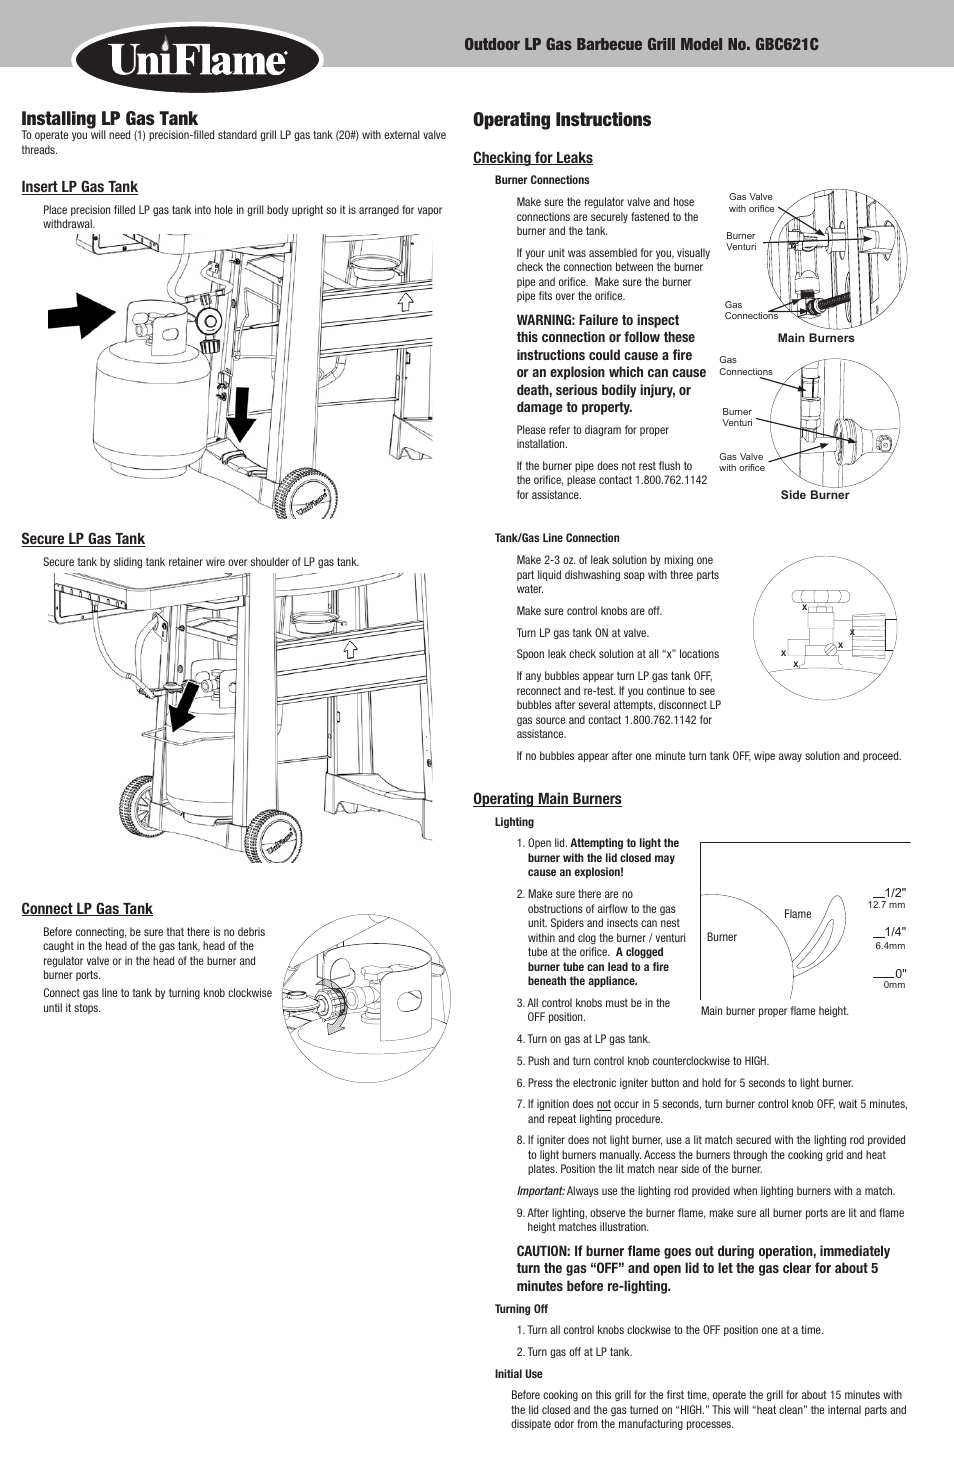 Operating Instructions Installing Lp Gas Tank Blue Rhino Uniflame Gbc Wiring Diagram Gbc621c User Manual Page 6 18